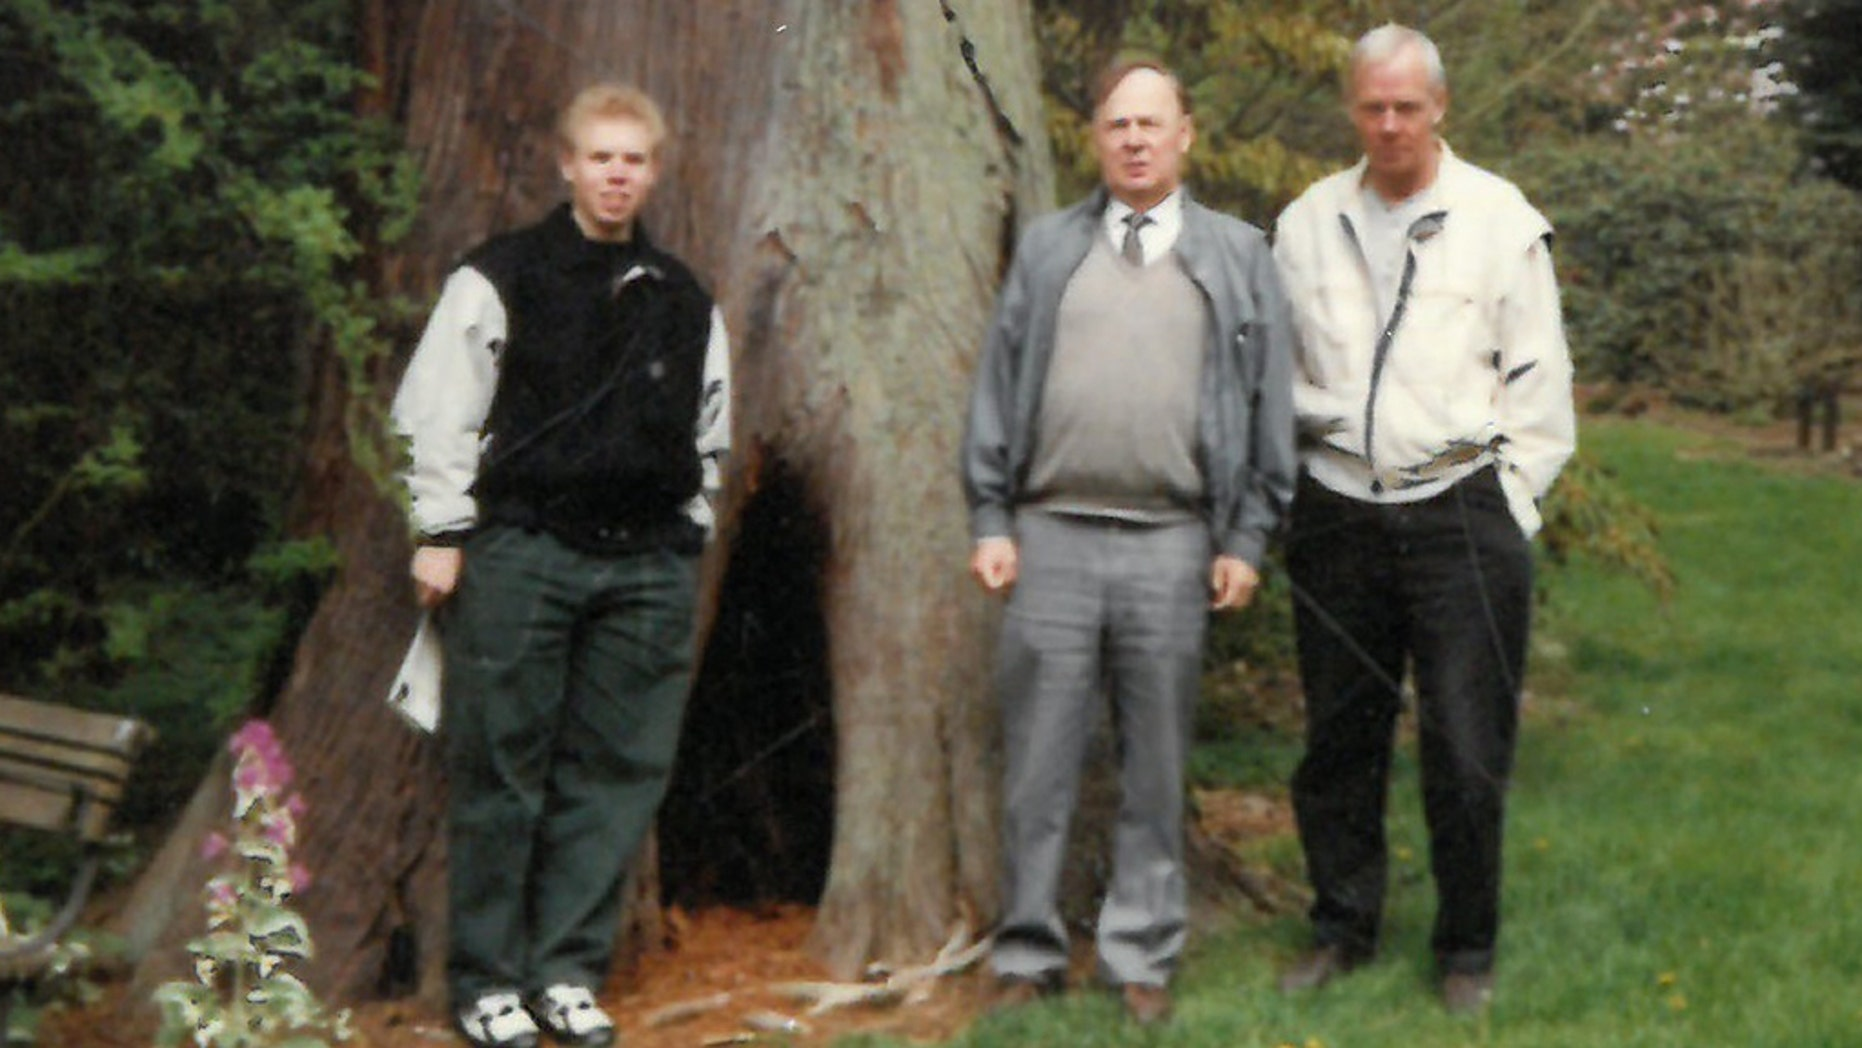 Elis Gosta Hjukstrom, center, died of cancer in 2017 at 87 years of age, leaving a Canadian import and distribution business and a Swedish family estate. He bequeathed those assets, totaling $14 million, to a man determined not to be his son. (Onyx Law)